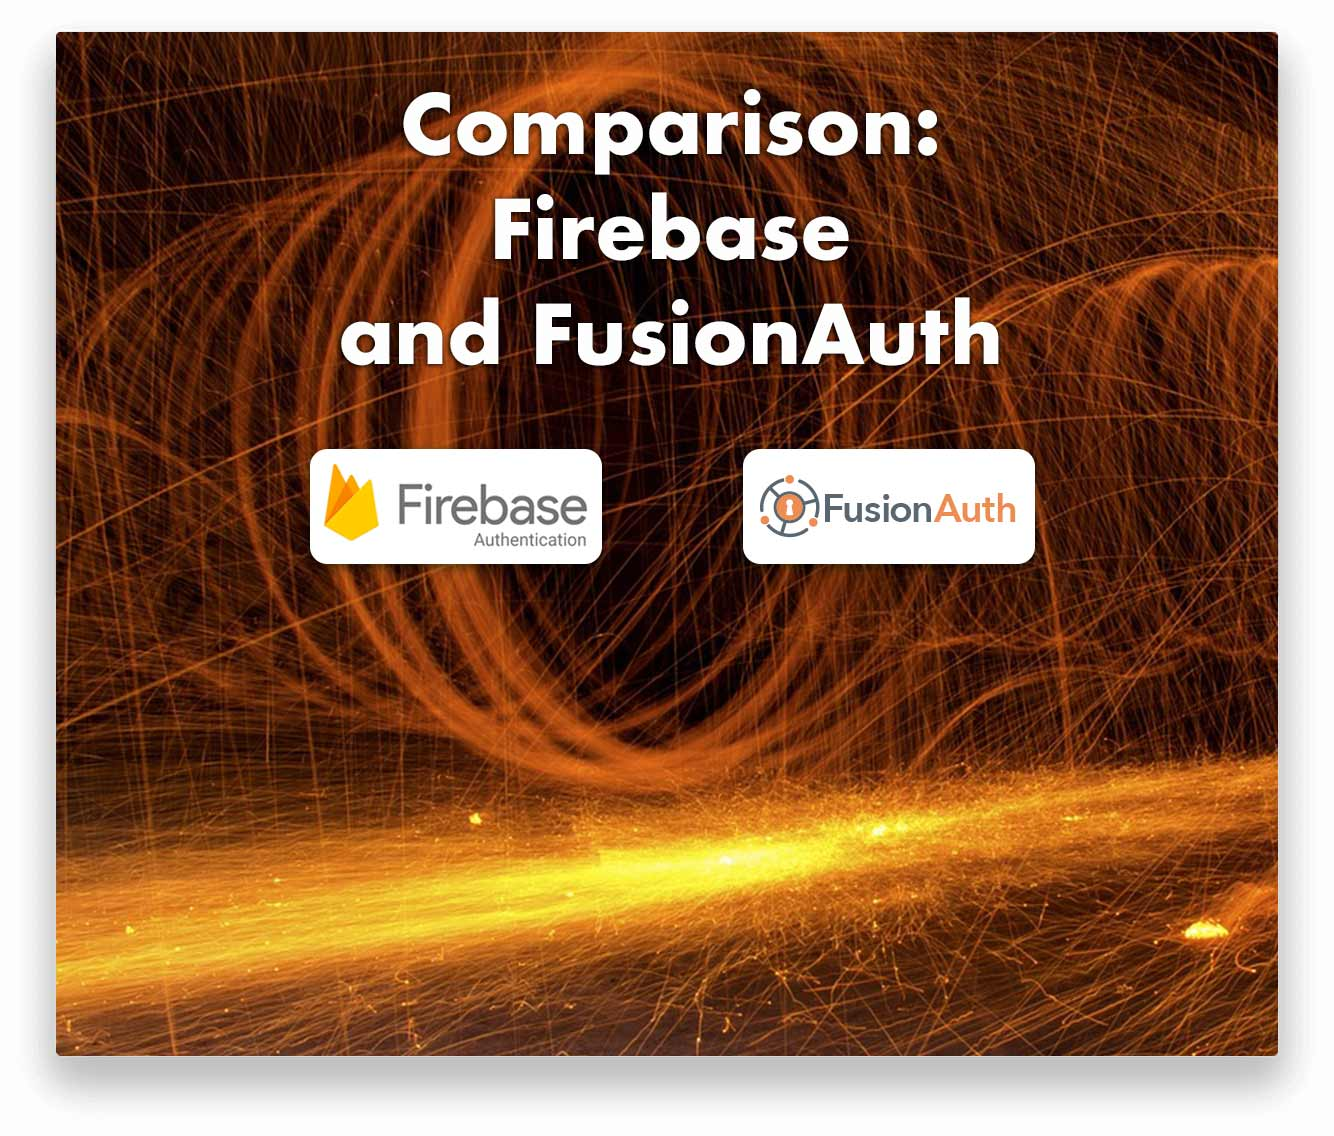 Firebase and FusionAuth CIAM Comparison